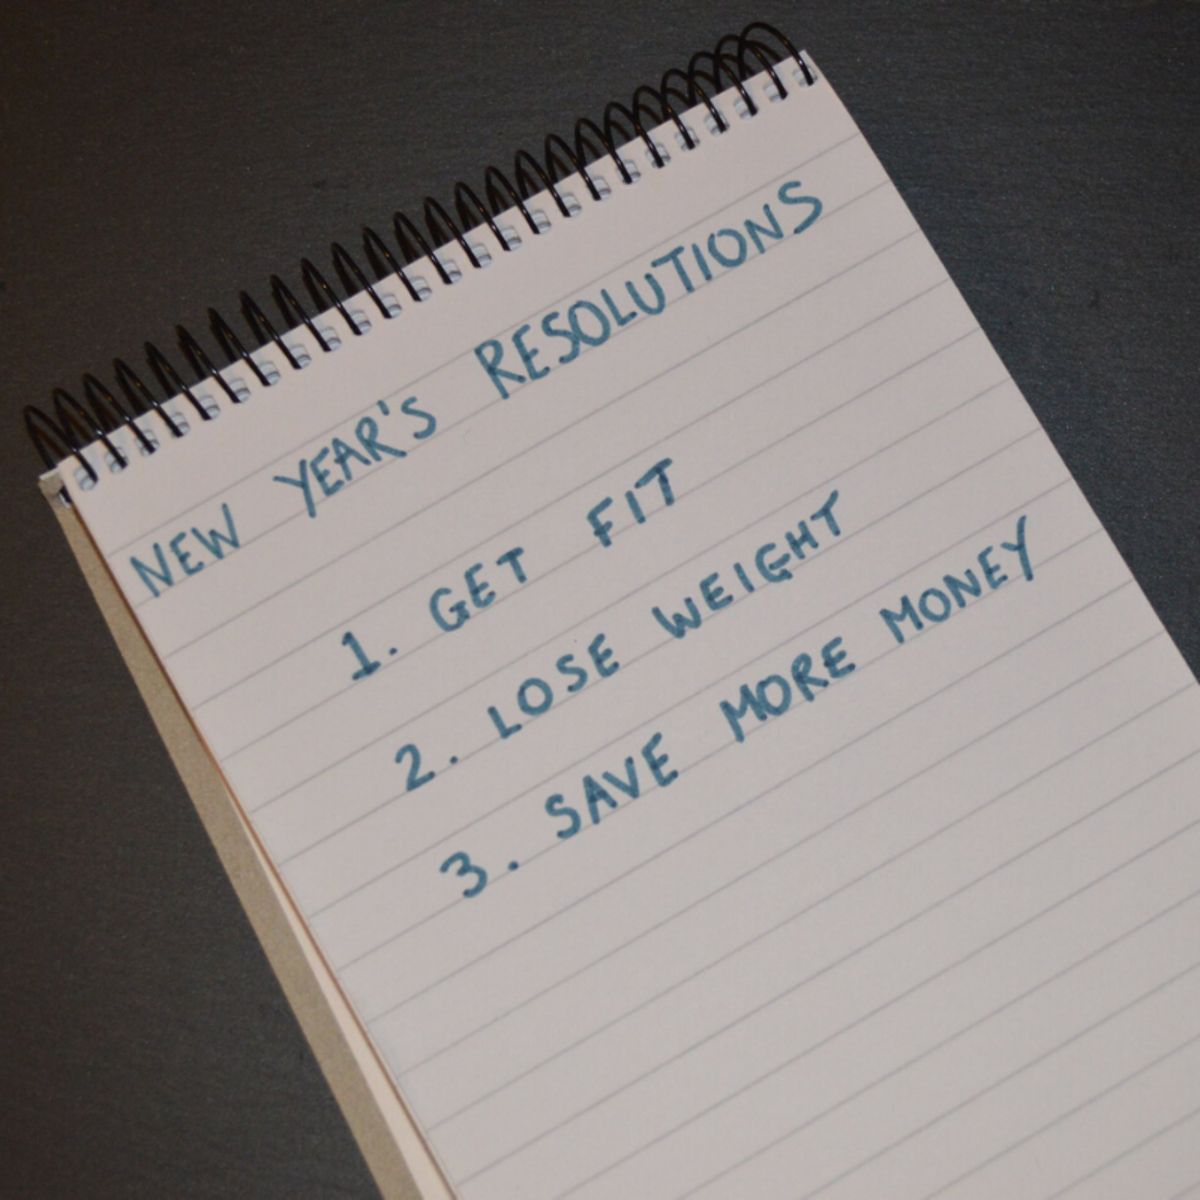 Making New Year's resolutions is an extremely popular tradition. Keeping them is another story . . .